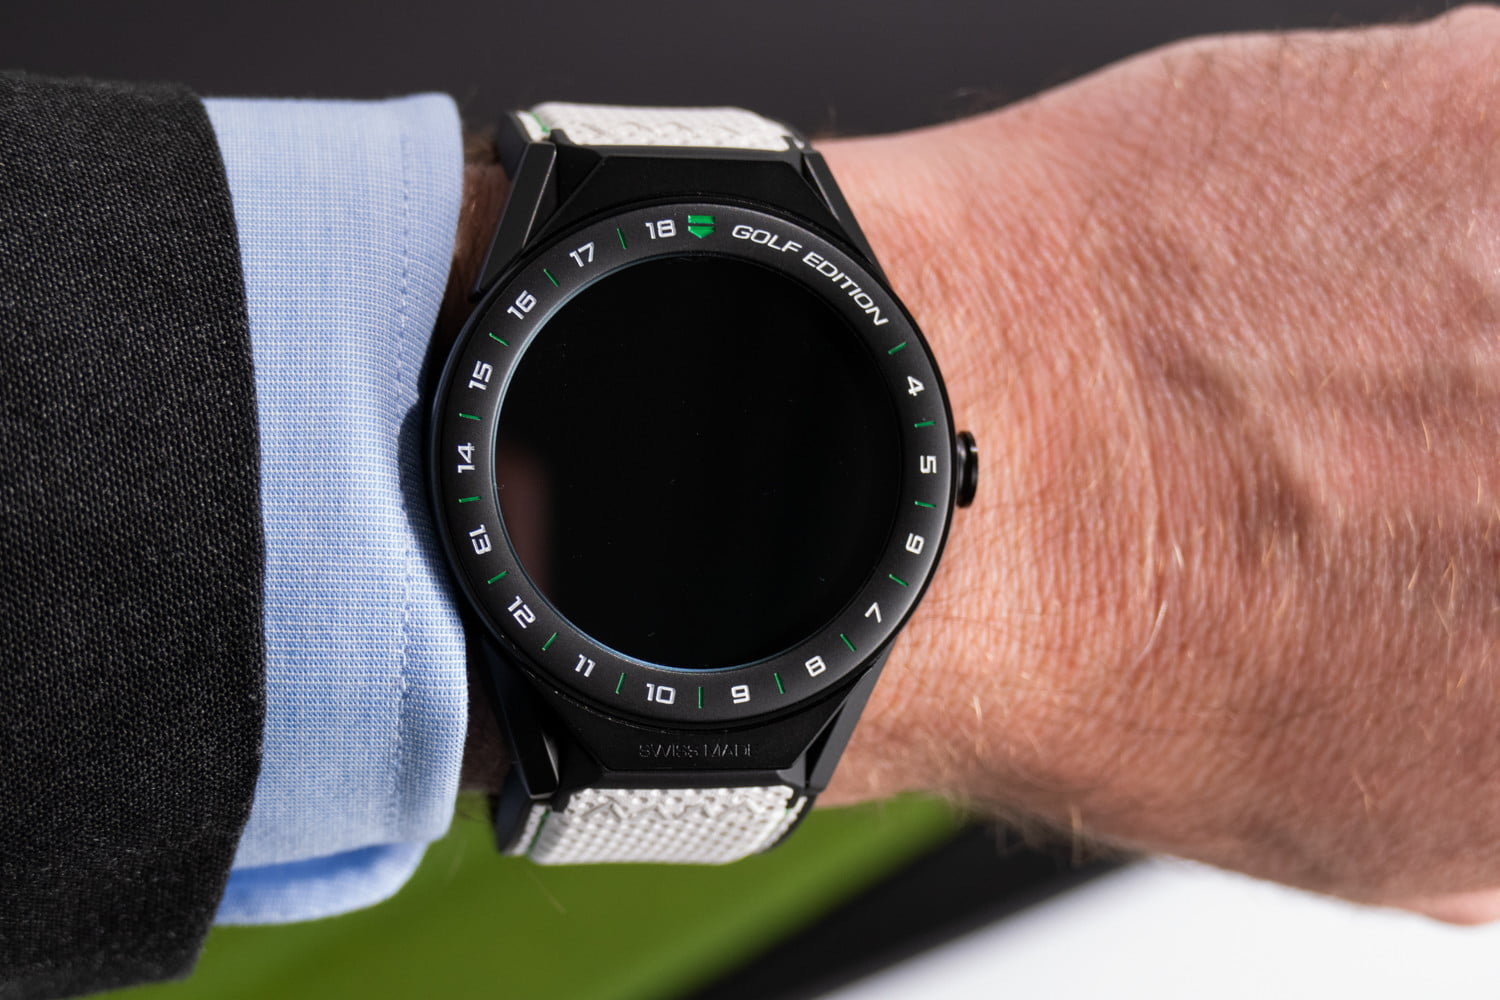 mejor selección 55d10 25b8c Tag Heuer Golf Edition Smartwatch Is More Than Just a Flash ...